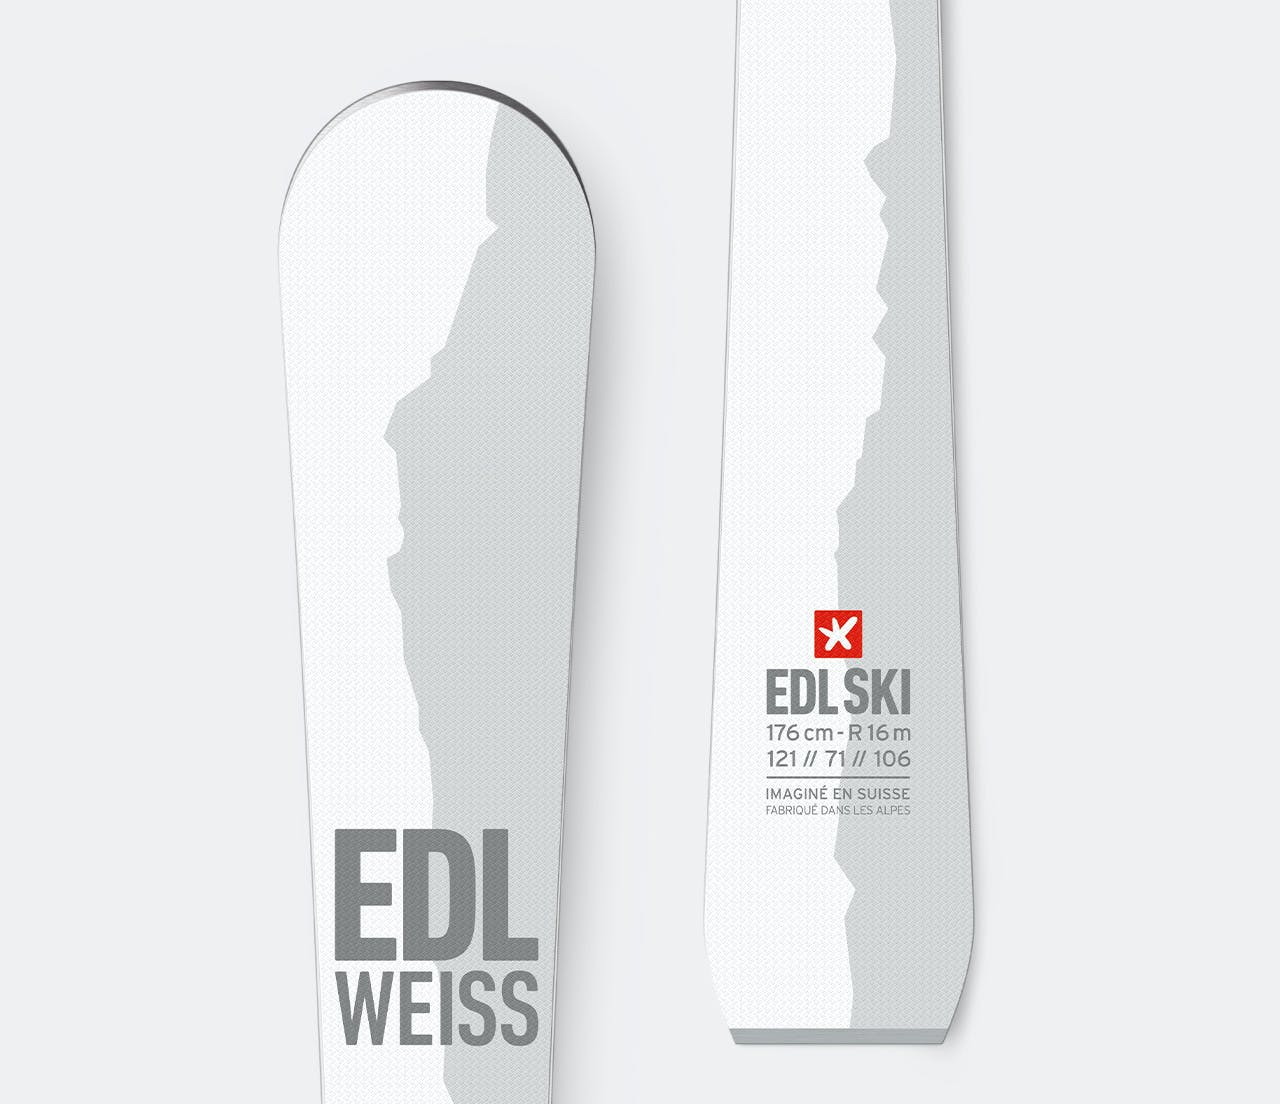 EDL WEISS